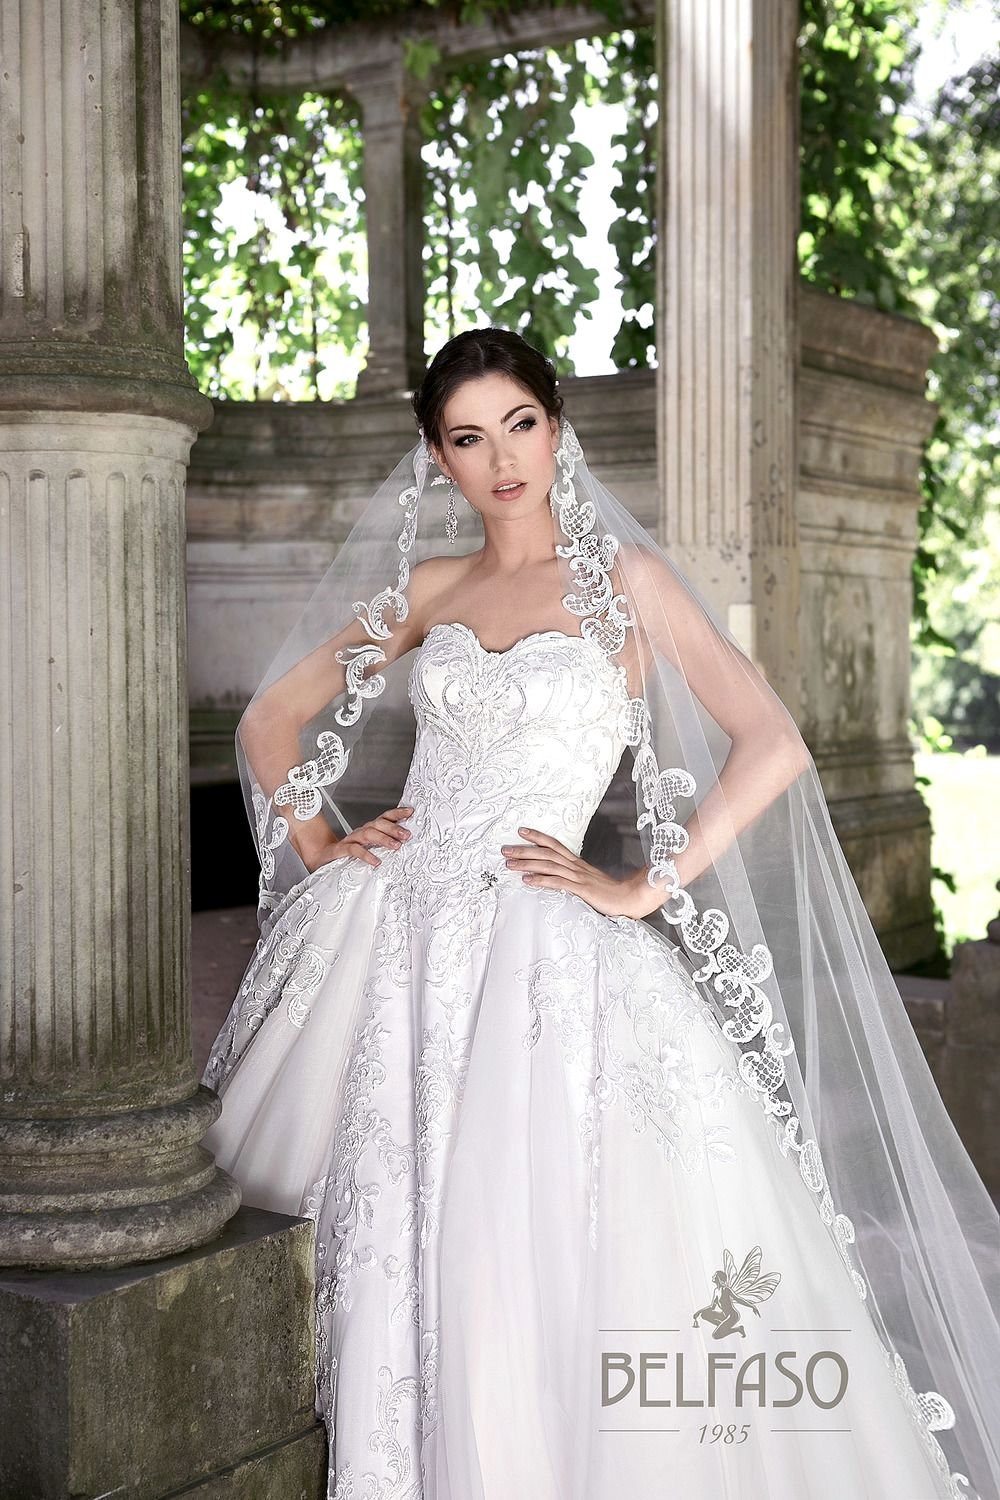 Dresses For 20 Year Old Wedding Guest   Stunning wedding dresses ...